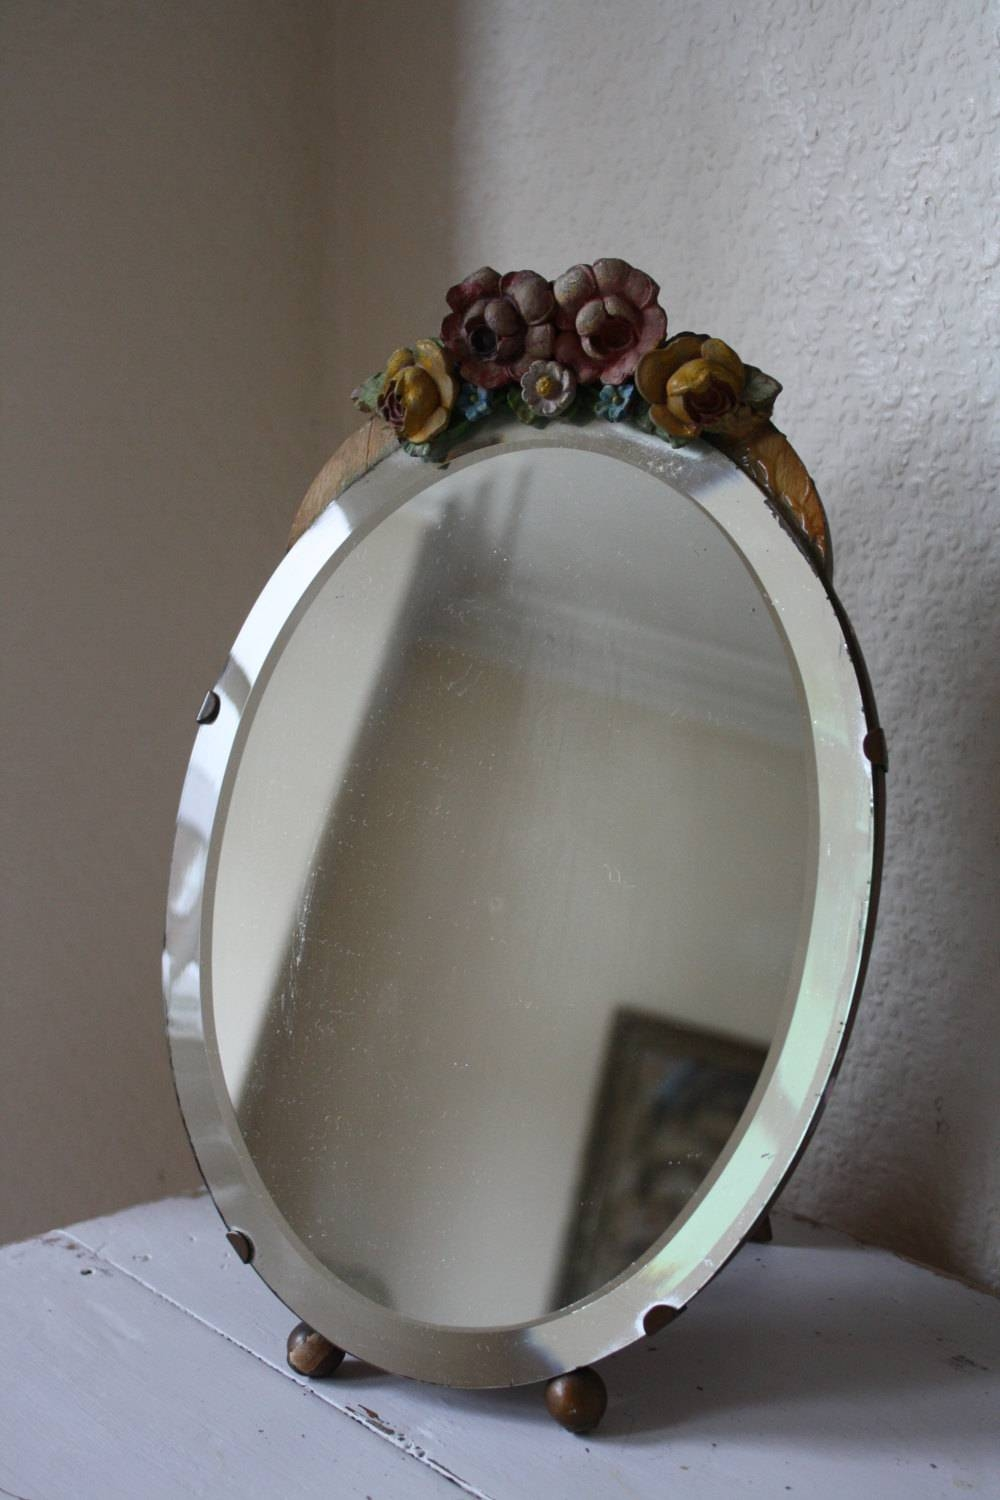 Pretty Freestanding Vintage Barbola Dressing Table Mirror | Vinterior intended for Free Standing Mirrors for Dressing Table (Image 11 of 15)